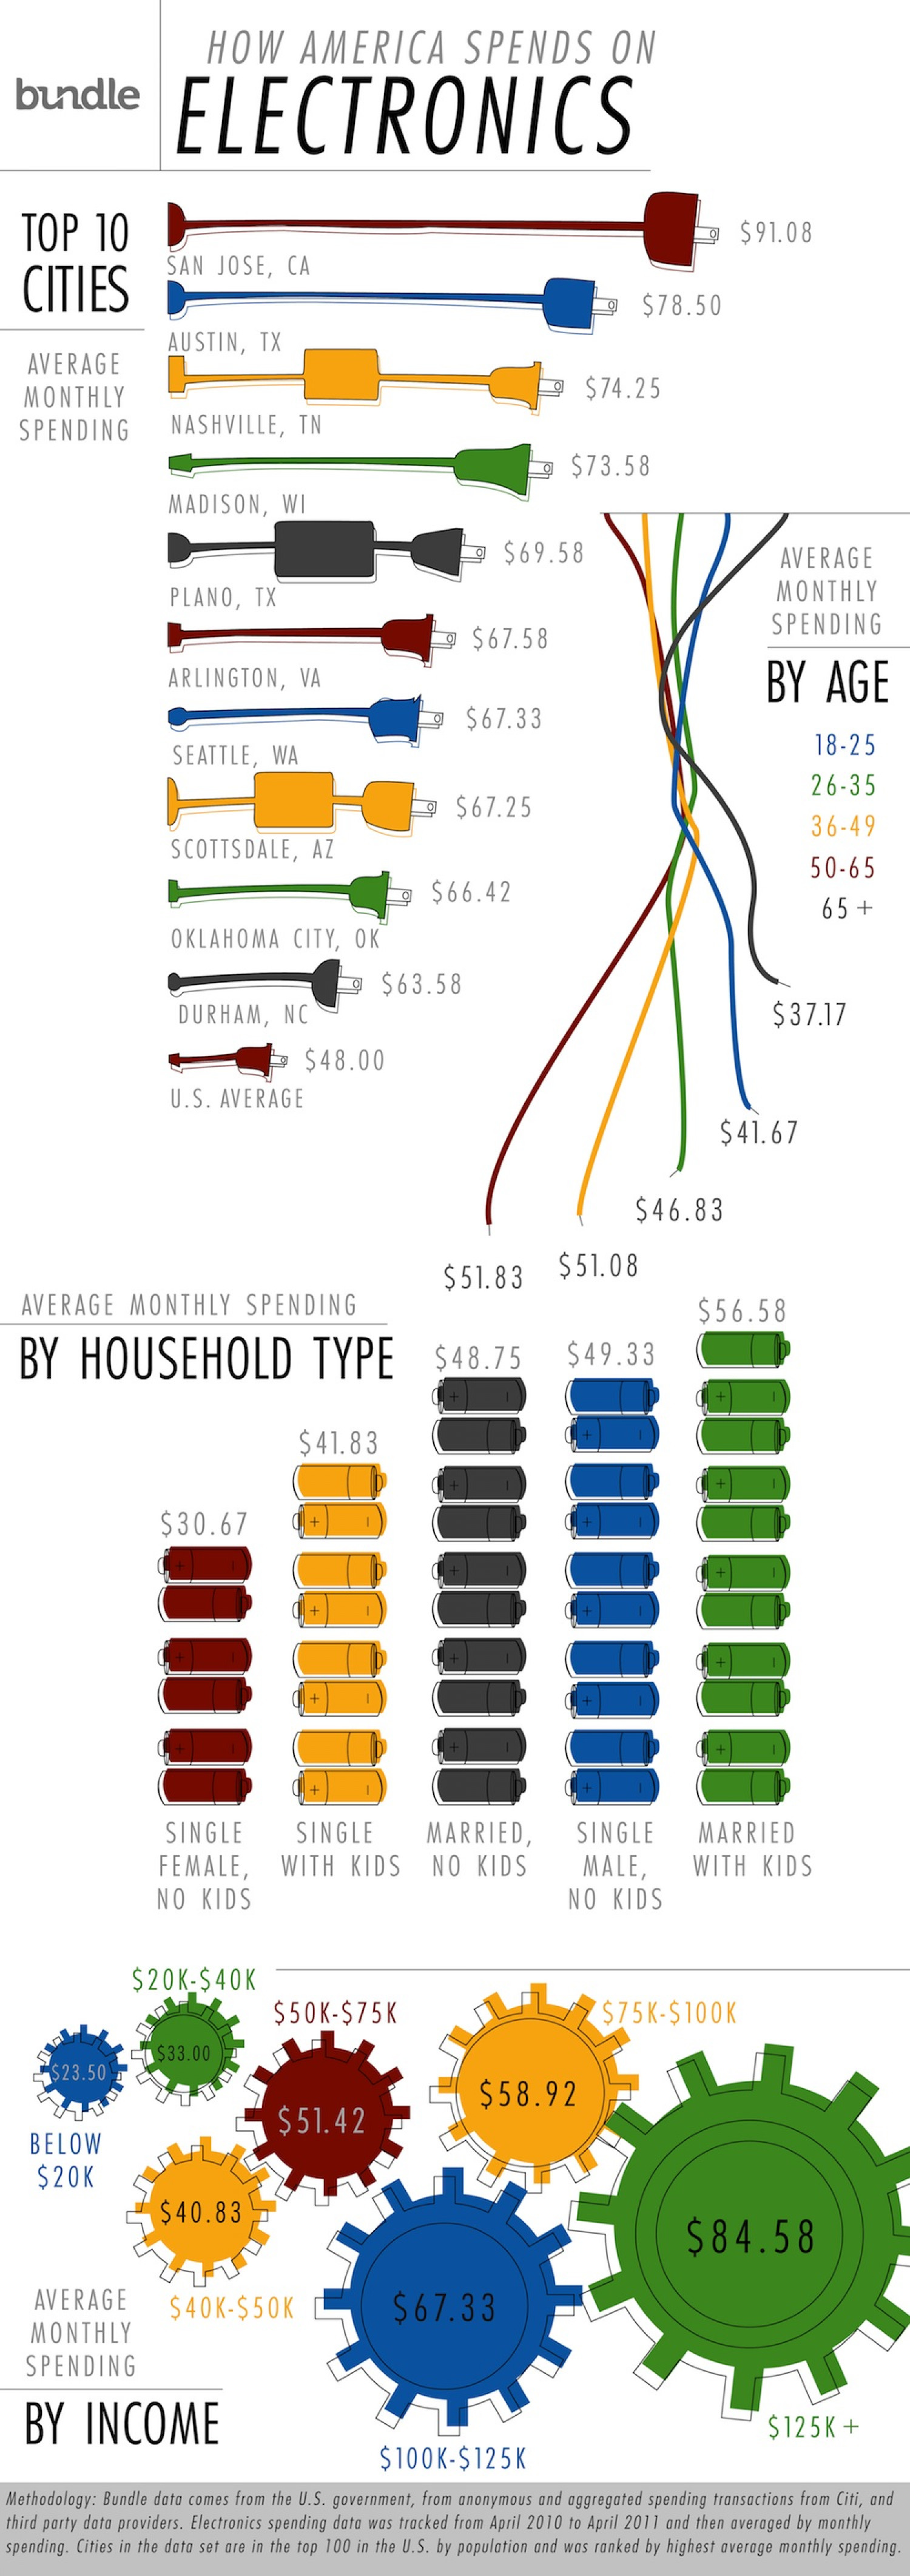 How America spends on electronics Infographic